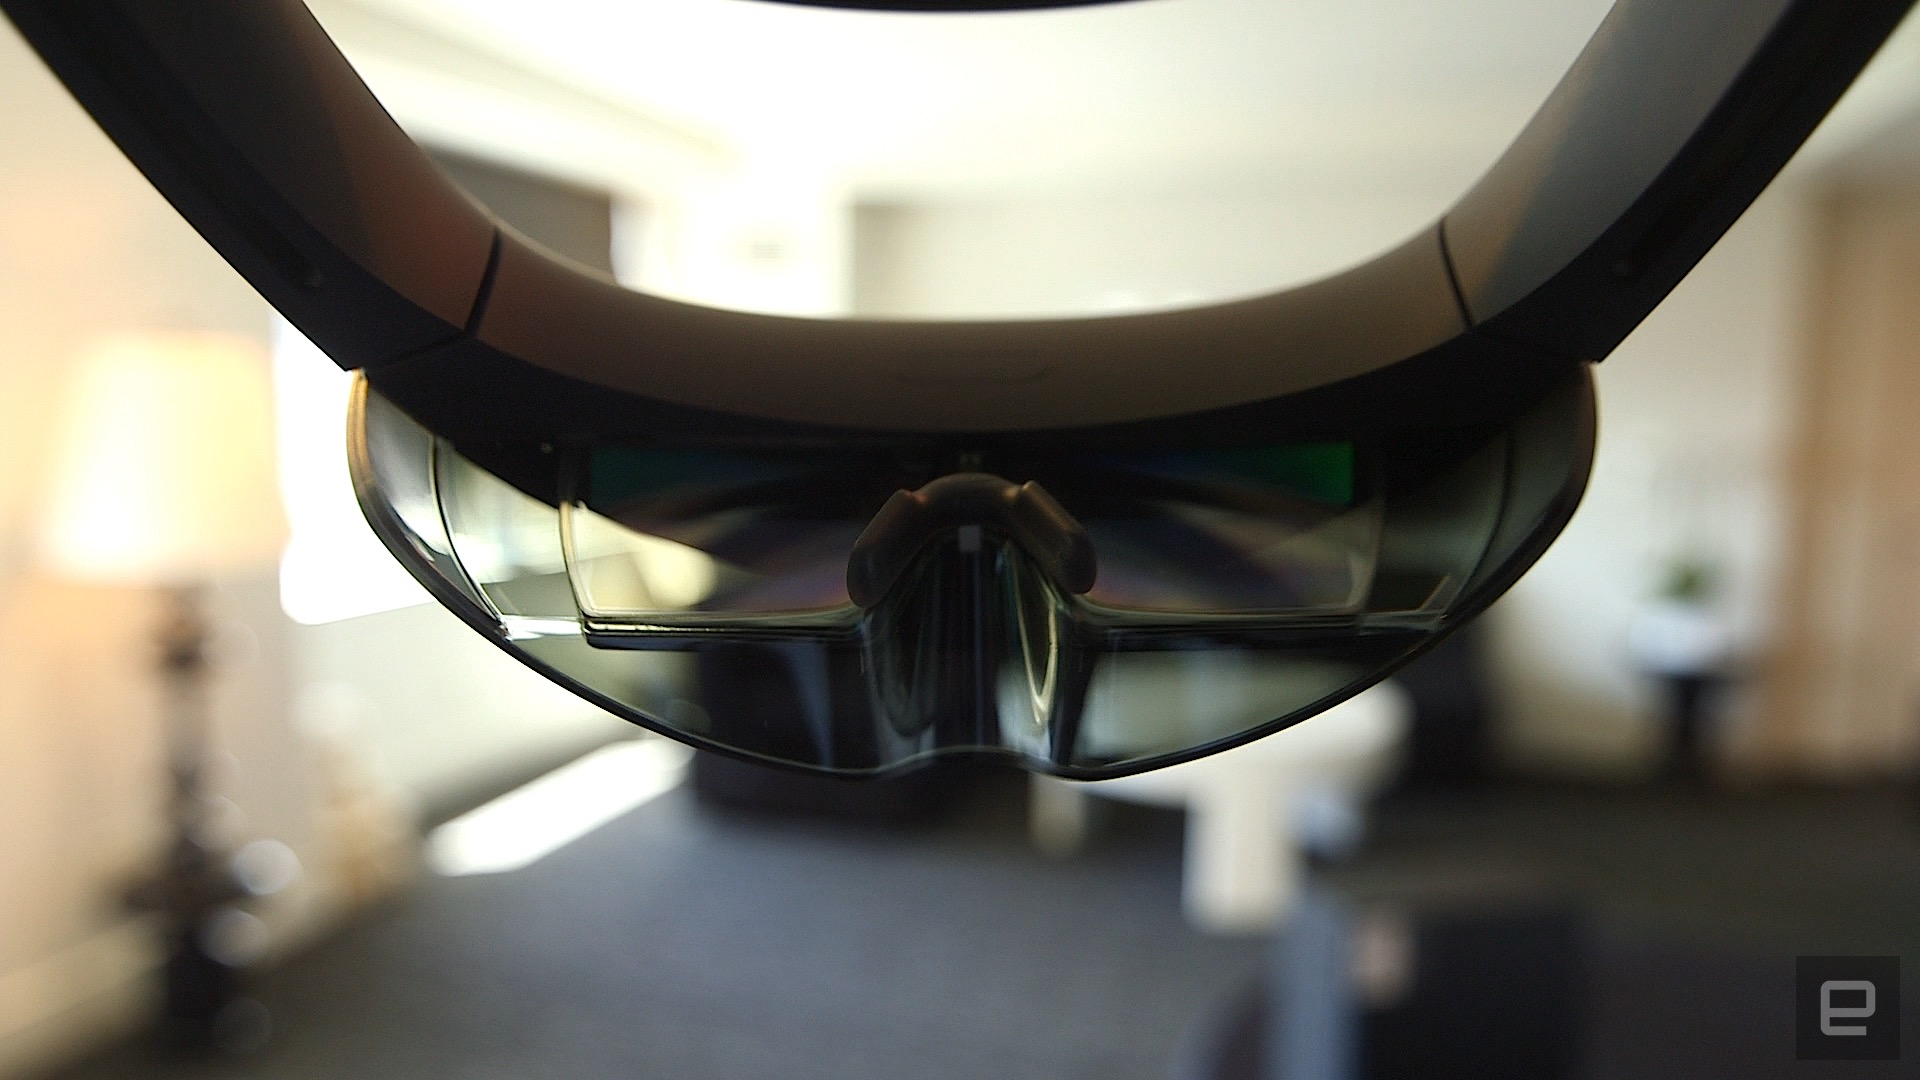 Untethered and unguided: Our first deep look at HoloLens